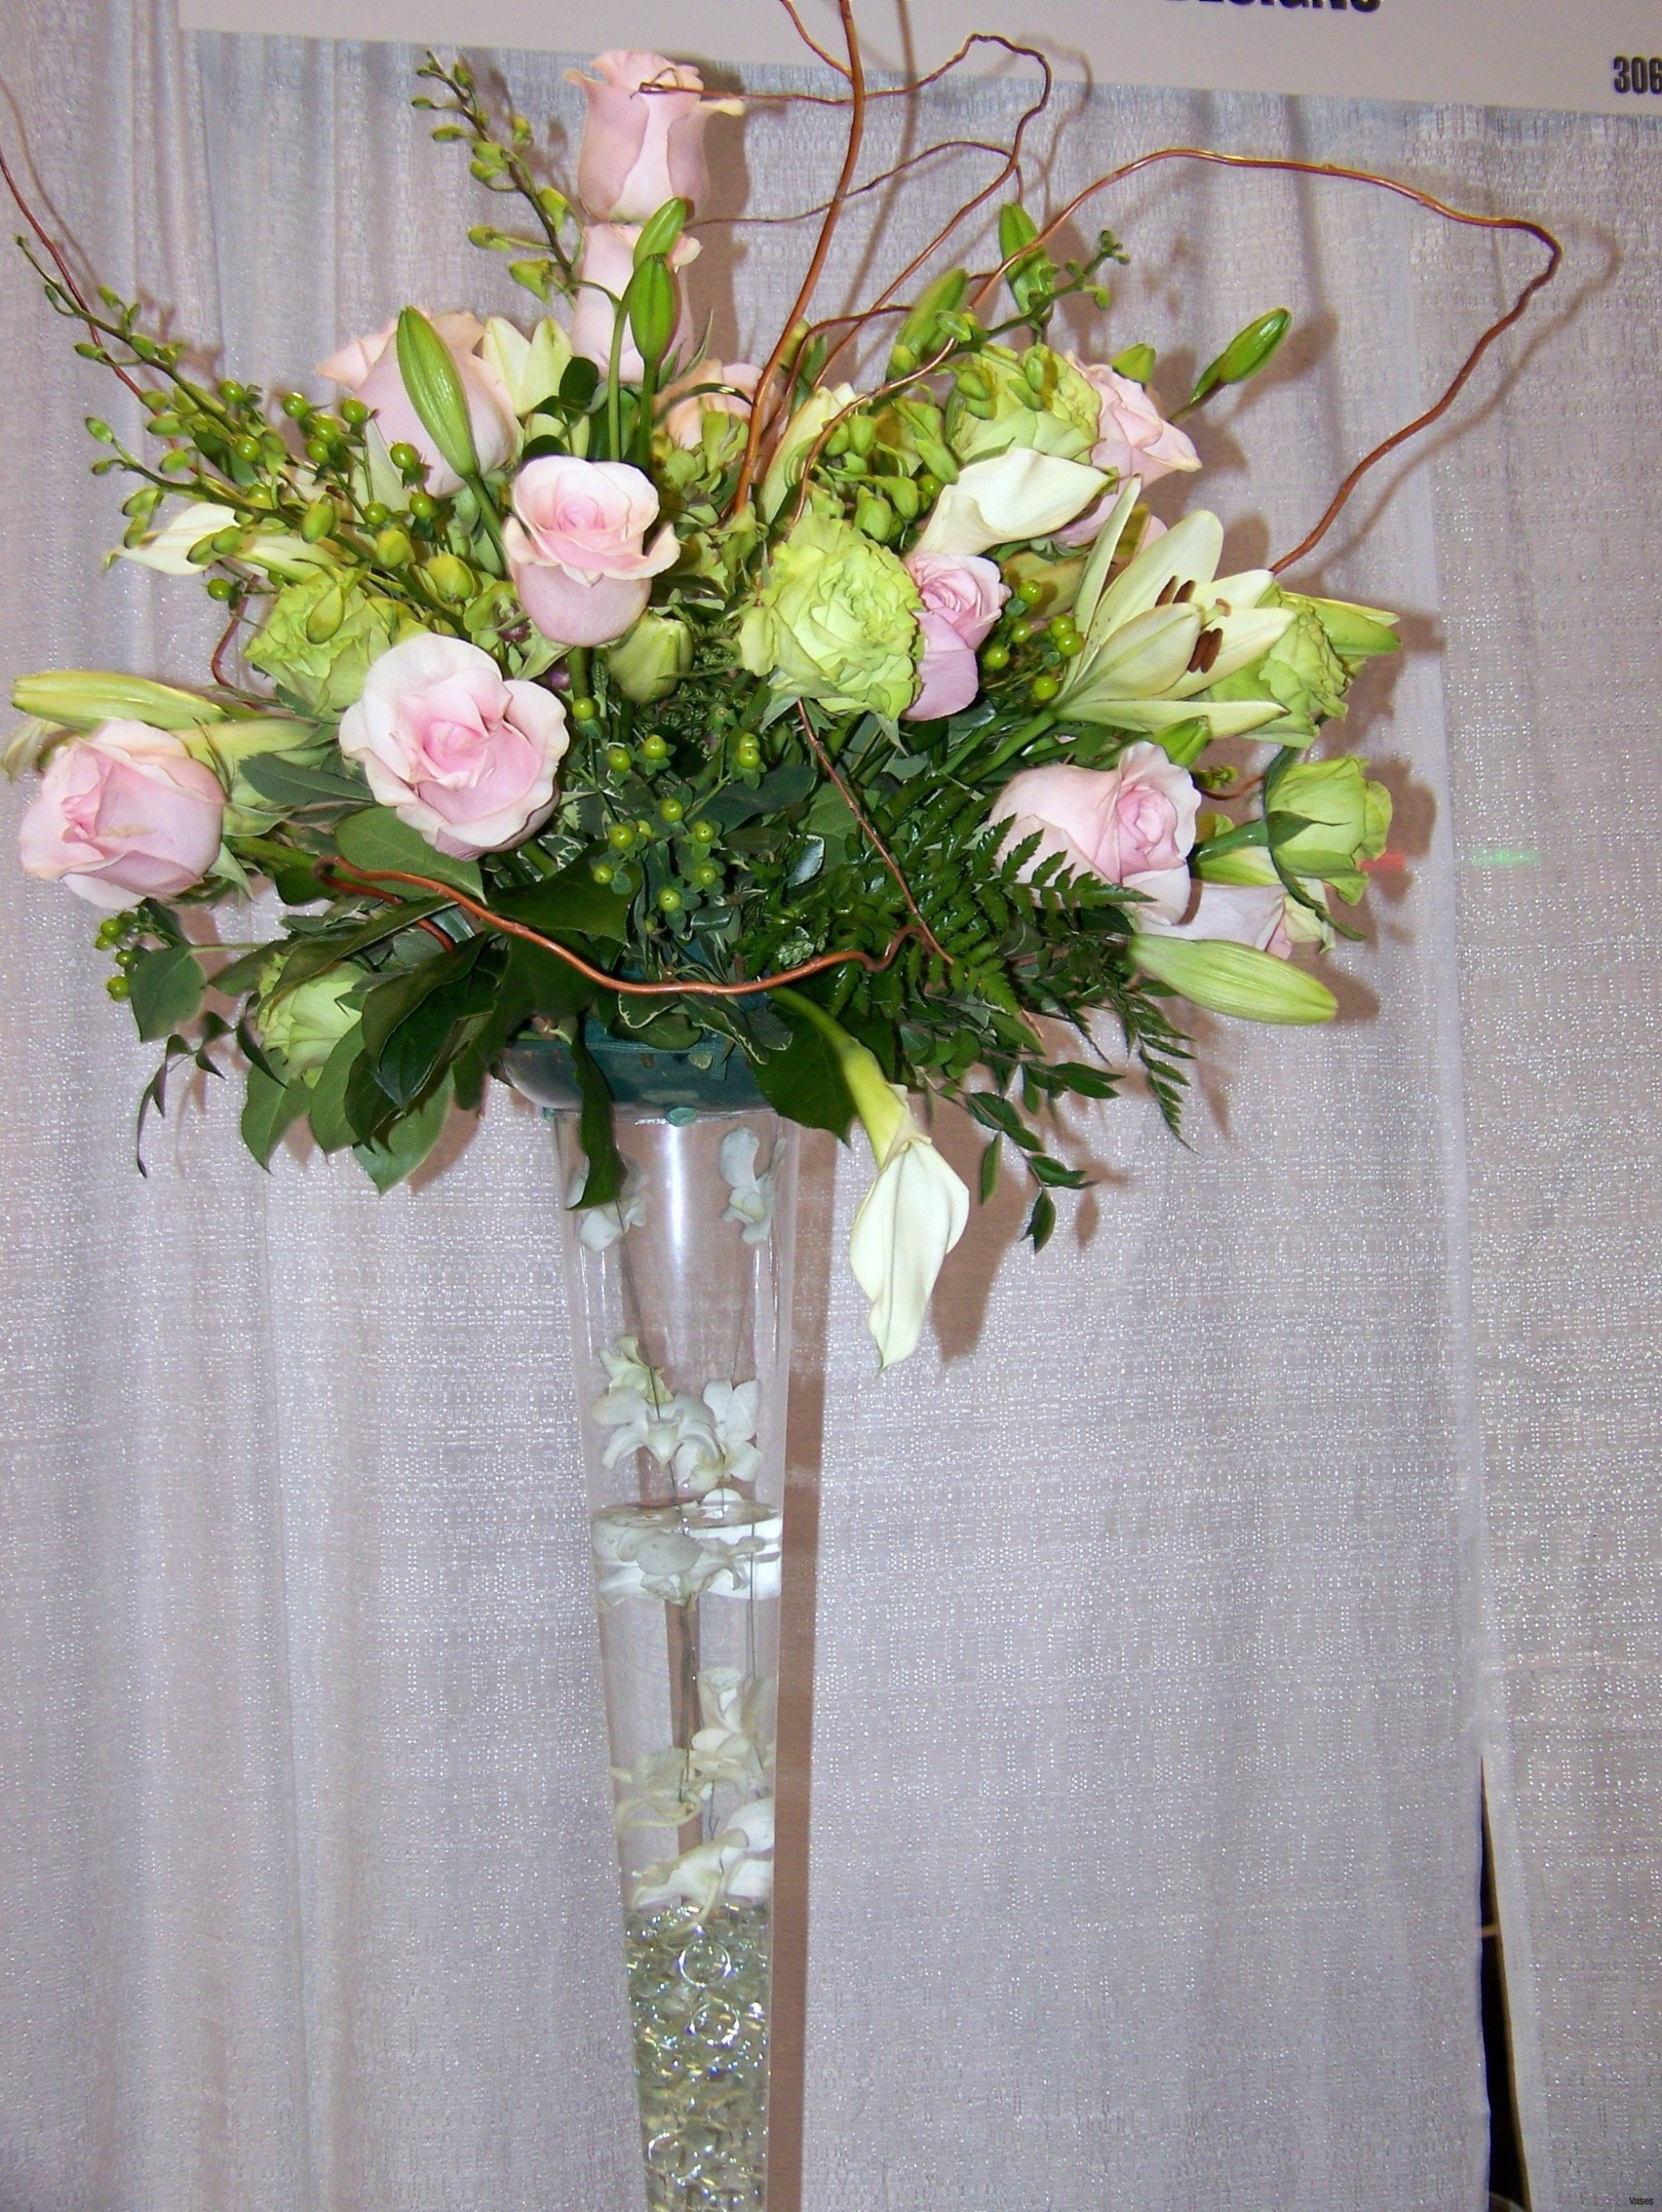 cheap vases near me of outside wedding decorations ideas new h vases ideas for floral inside outside wedding decorations ideas new h vases ideas for floral arrangements in i 0d design ideas